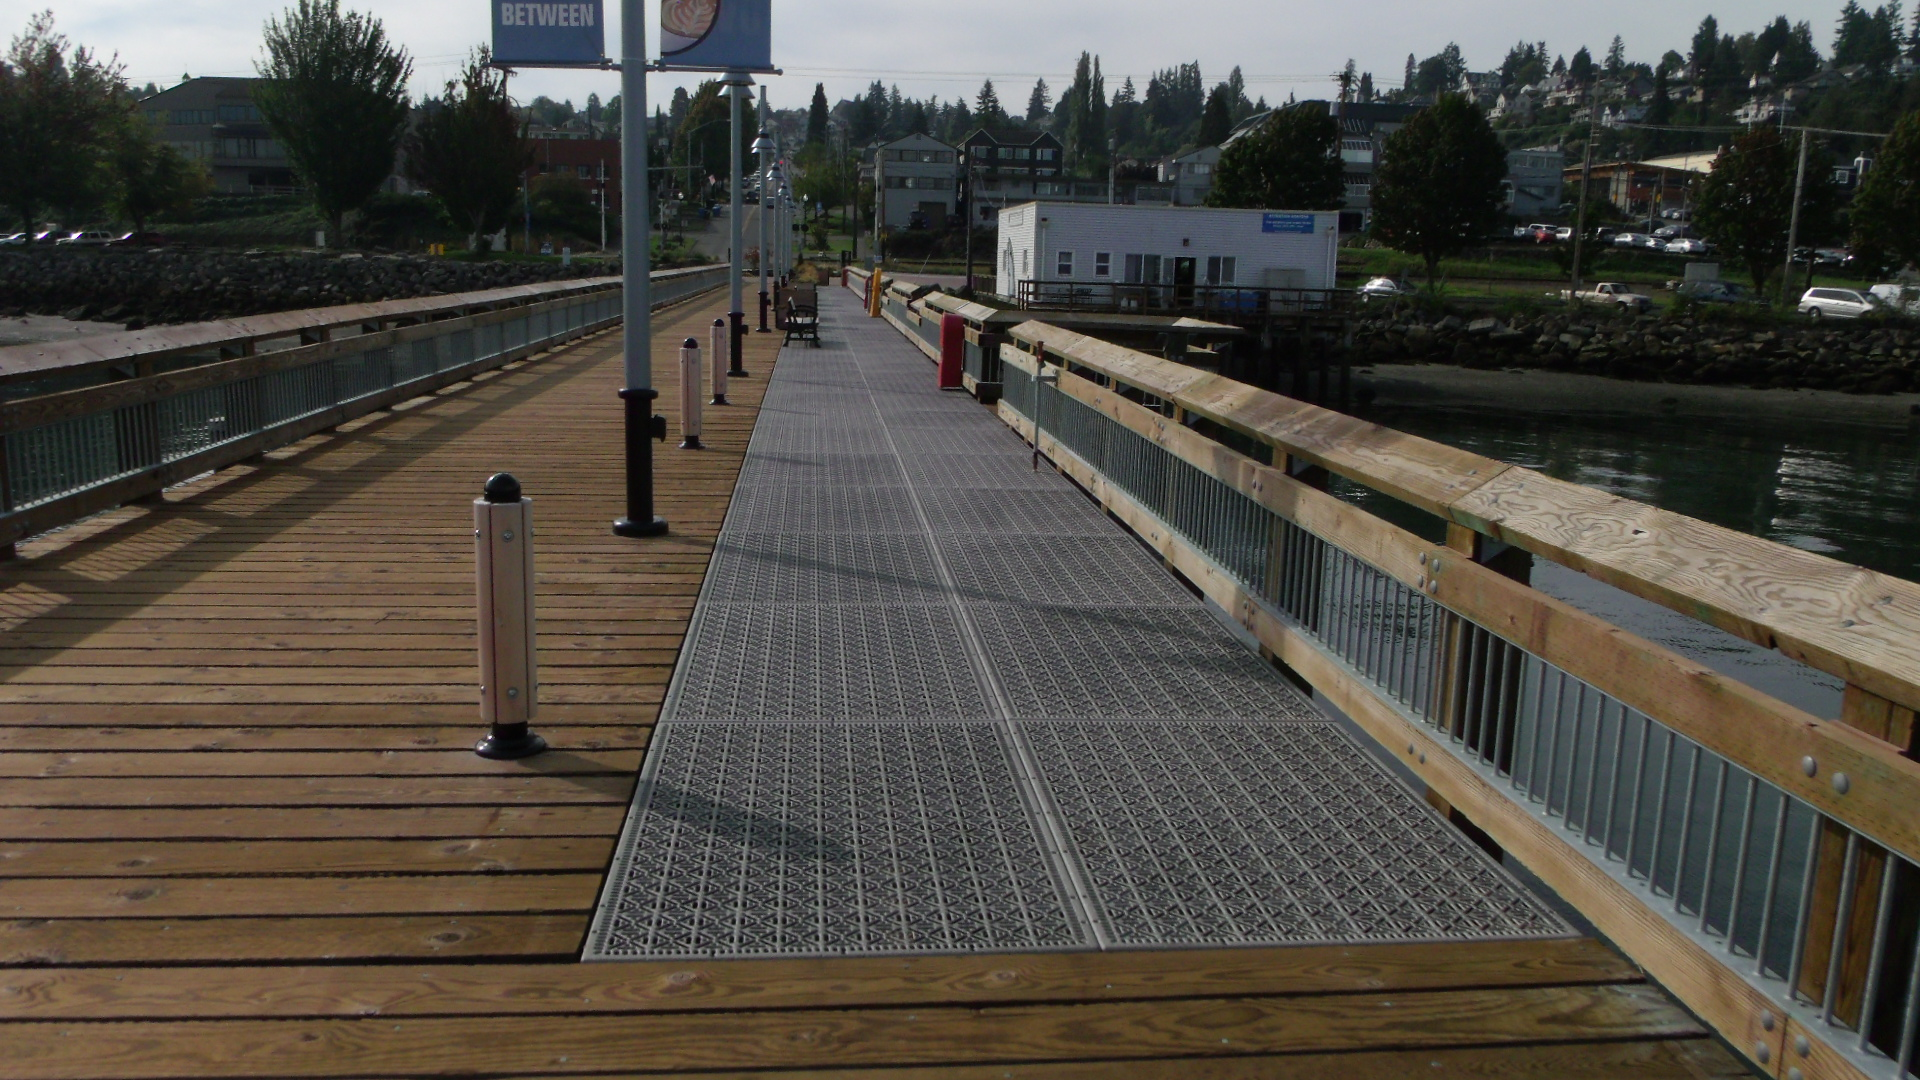 City of Tacoma Parks Department Old Town Dock Refurbishment in Tacoma, WA. Using Xccent Steel Dek Eco Series Decking. Click on the above picture to view more photos.